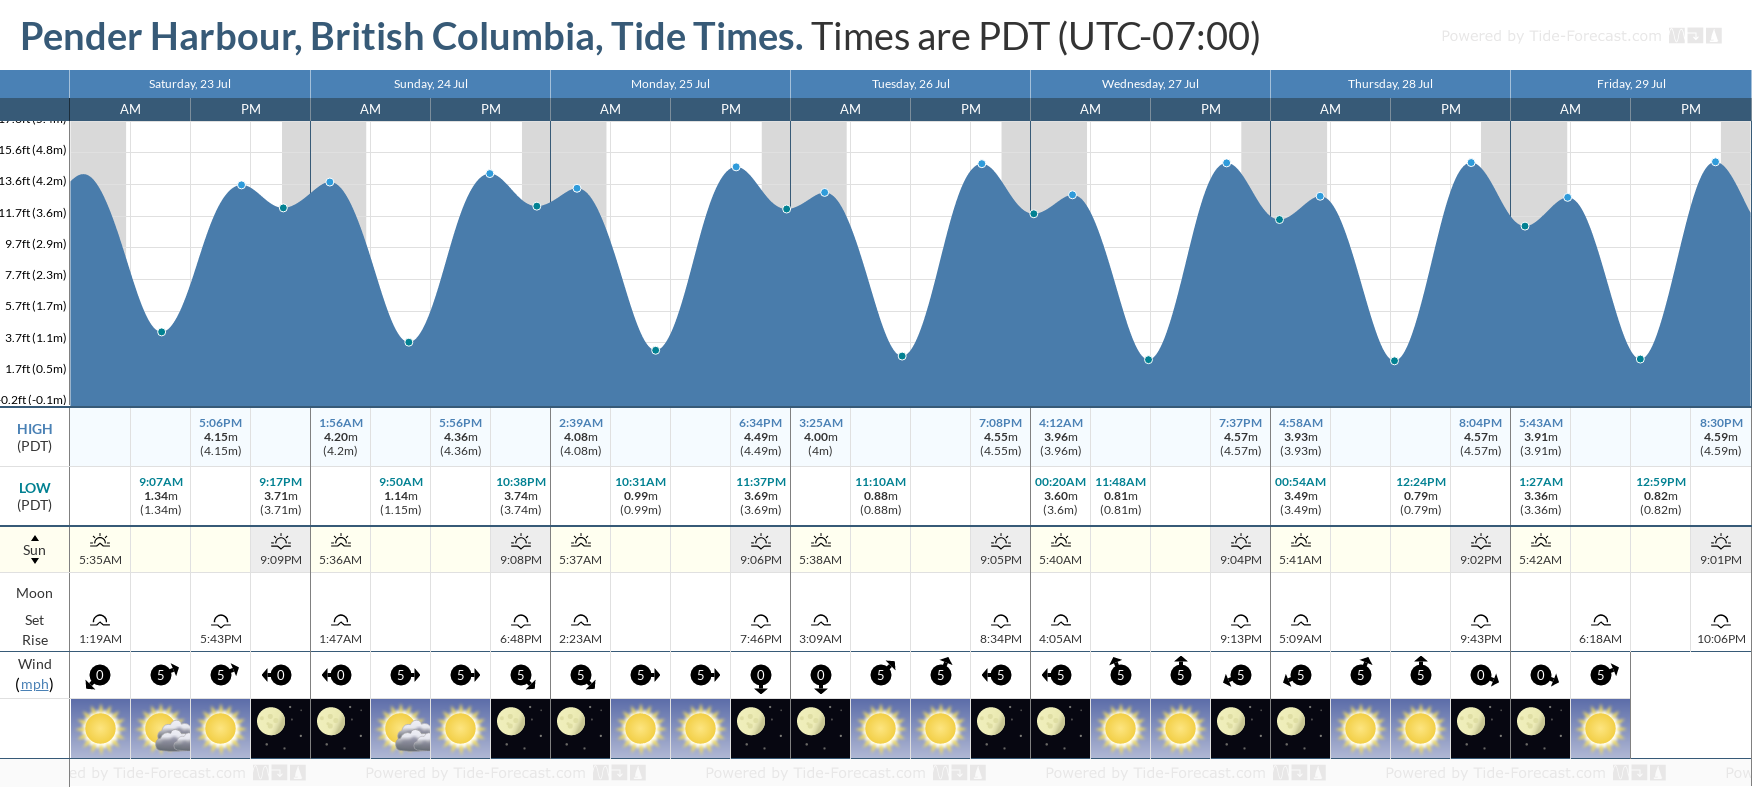 Pender Harbour, British Columbia Tide Chart including high and low tide tide times for the next 7 days